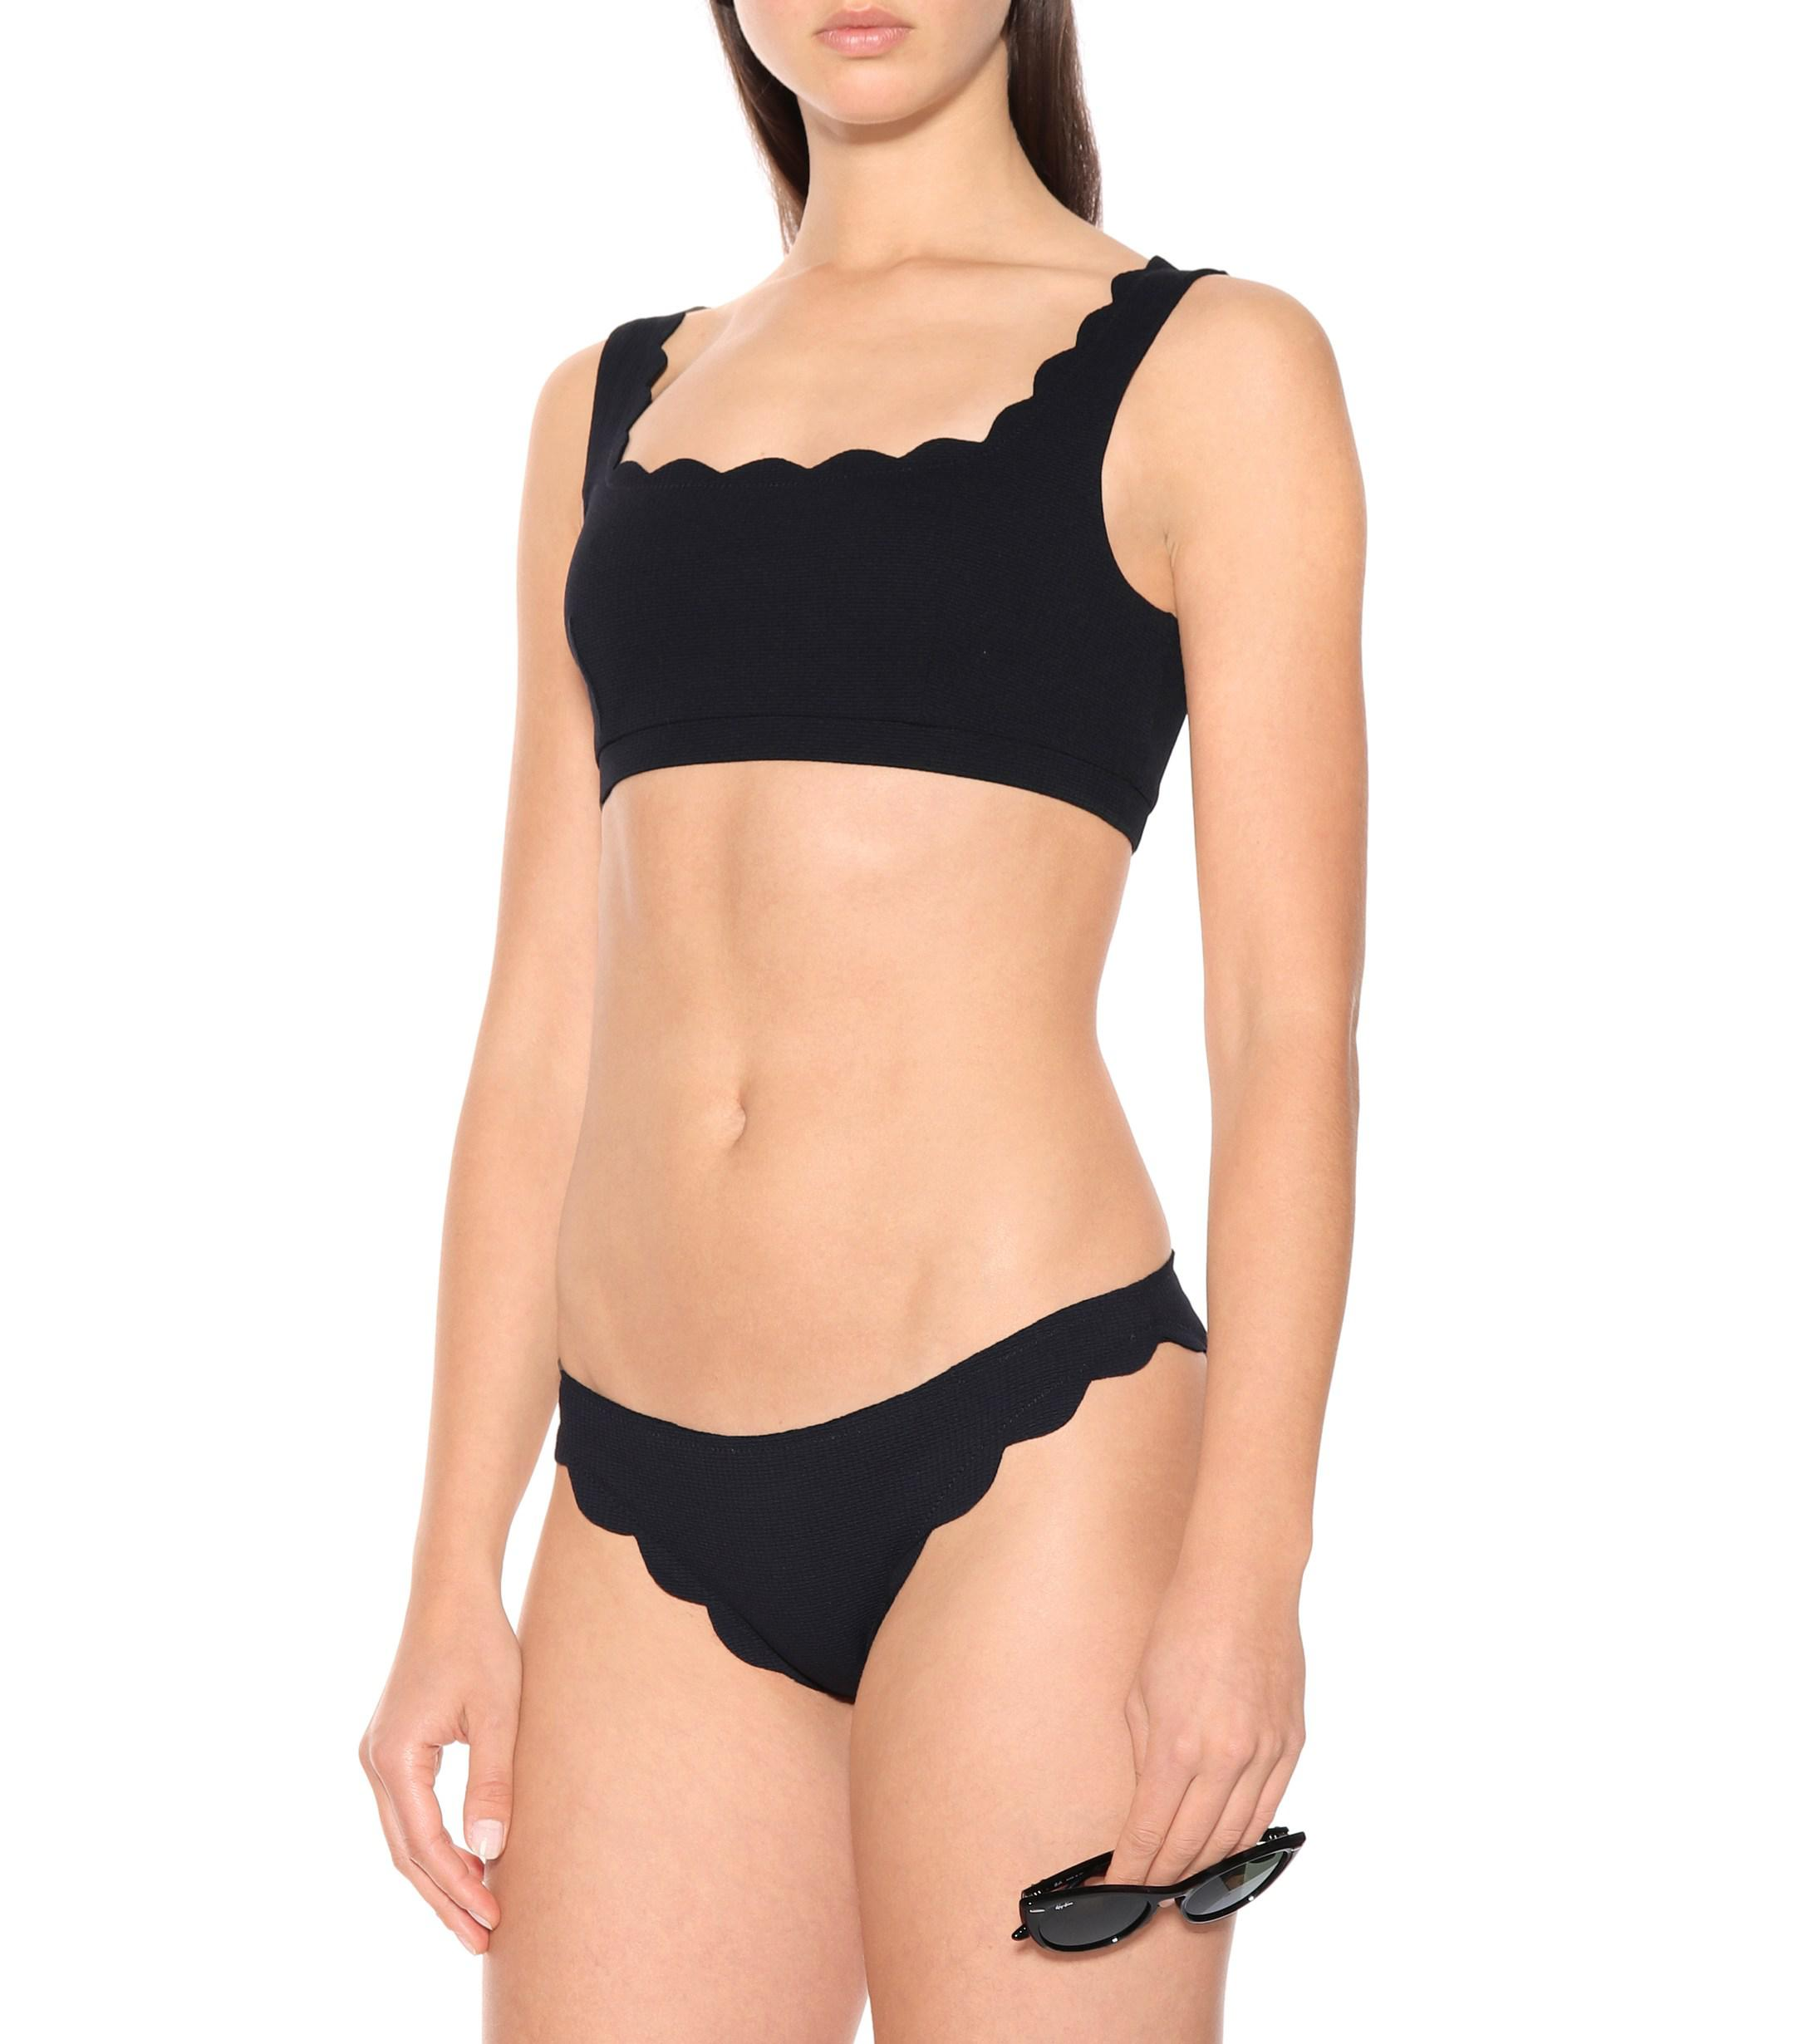 4111a0d69e3 Marysia Swim - Black Palm Springs Bikini Top - Lyst. View fullscreen